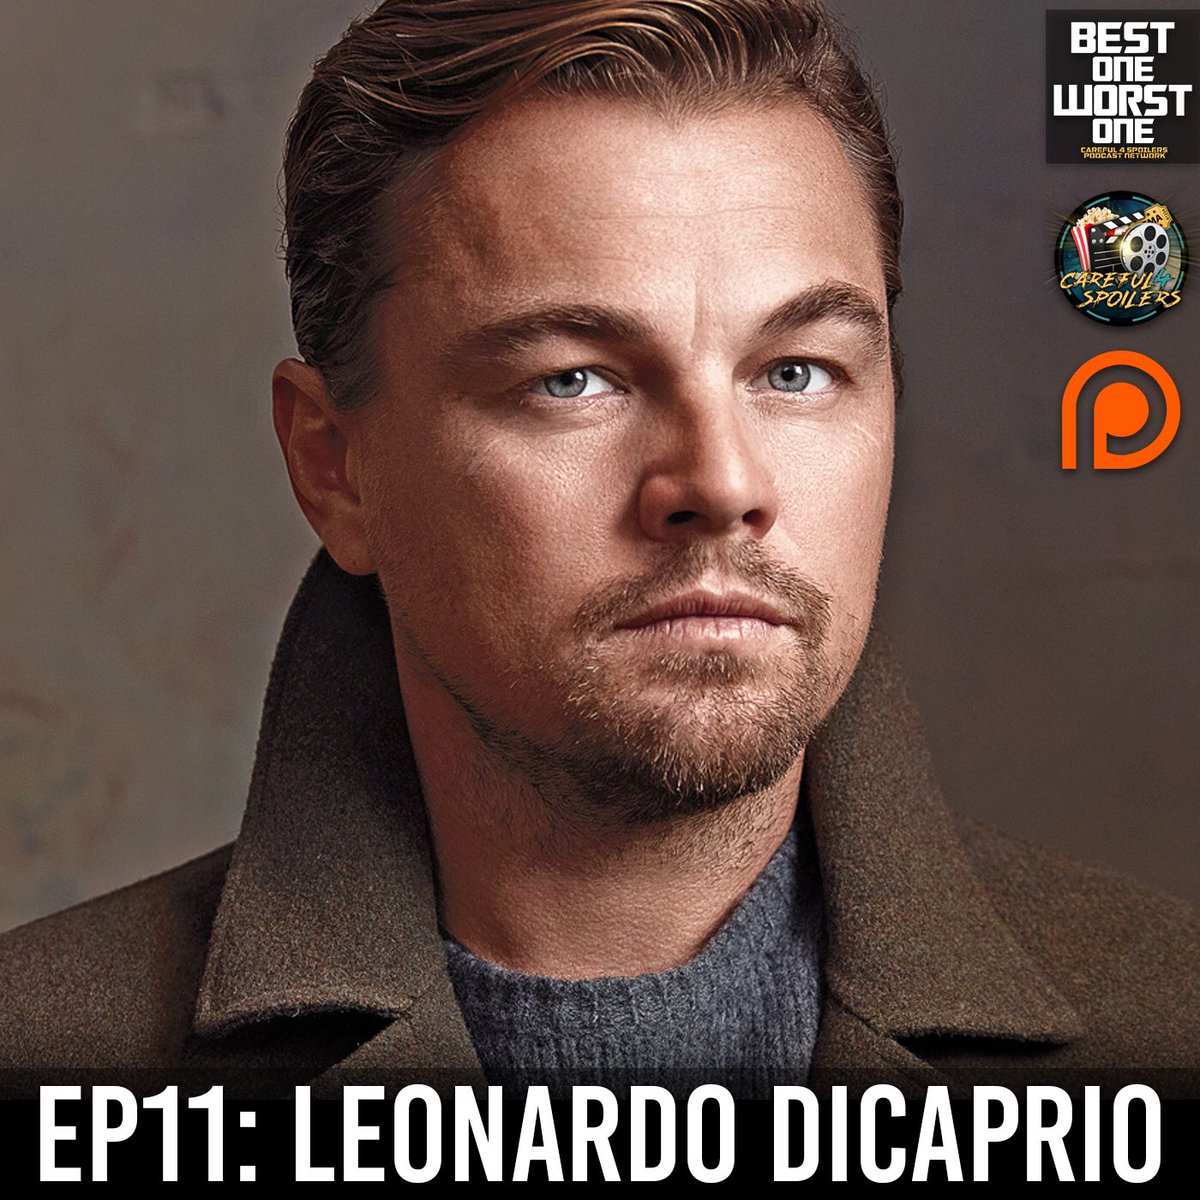 Episode 11 of the #BestOneWorstOne Podcast is all about the best and worst #LeonardoDiCaprioMovies exclusively on http://Patreon.com/c4spoilers on July 22nd #LeonardoDiCaprio #bestoneworstone #bestoneworstonepodcast #careful4spoilers #careful4spoilerspodcastnetwork #c4spic.twitter.com/E12DT2sK7J